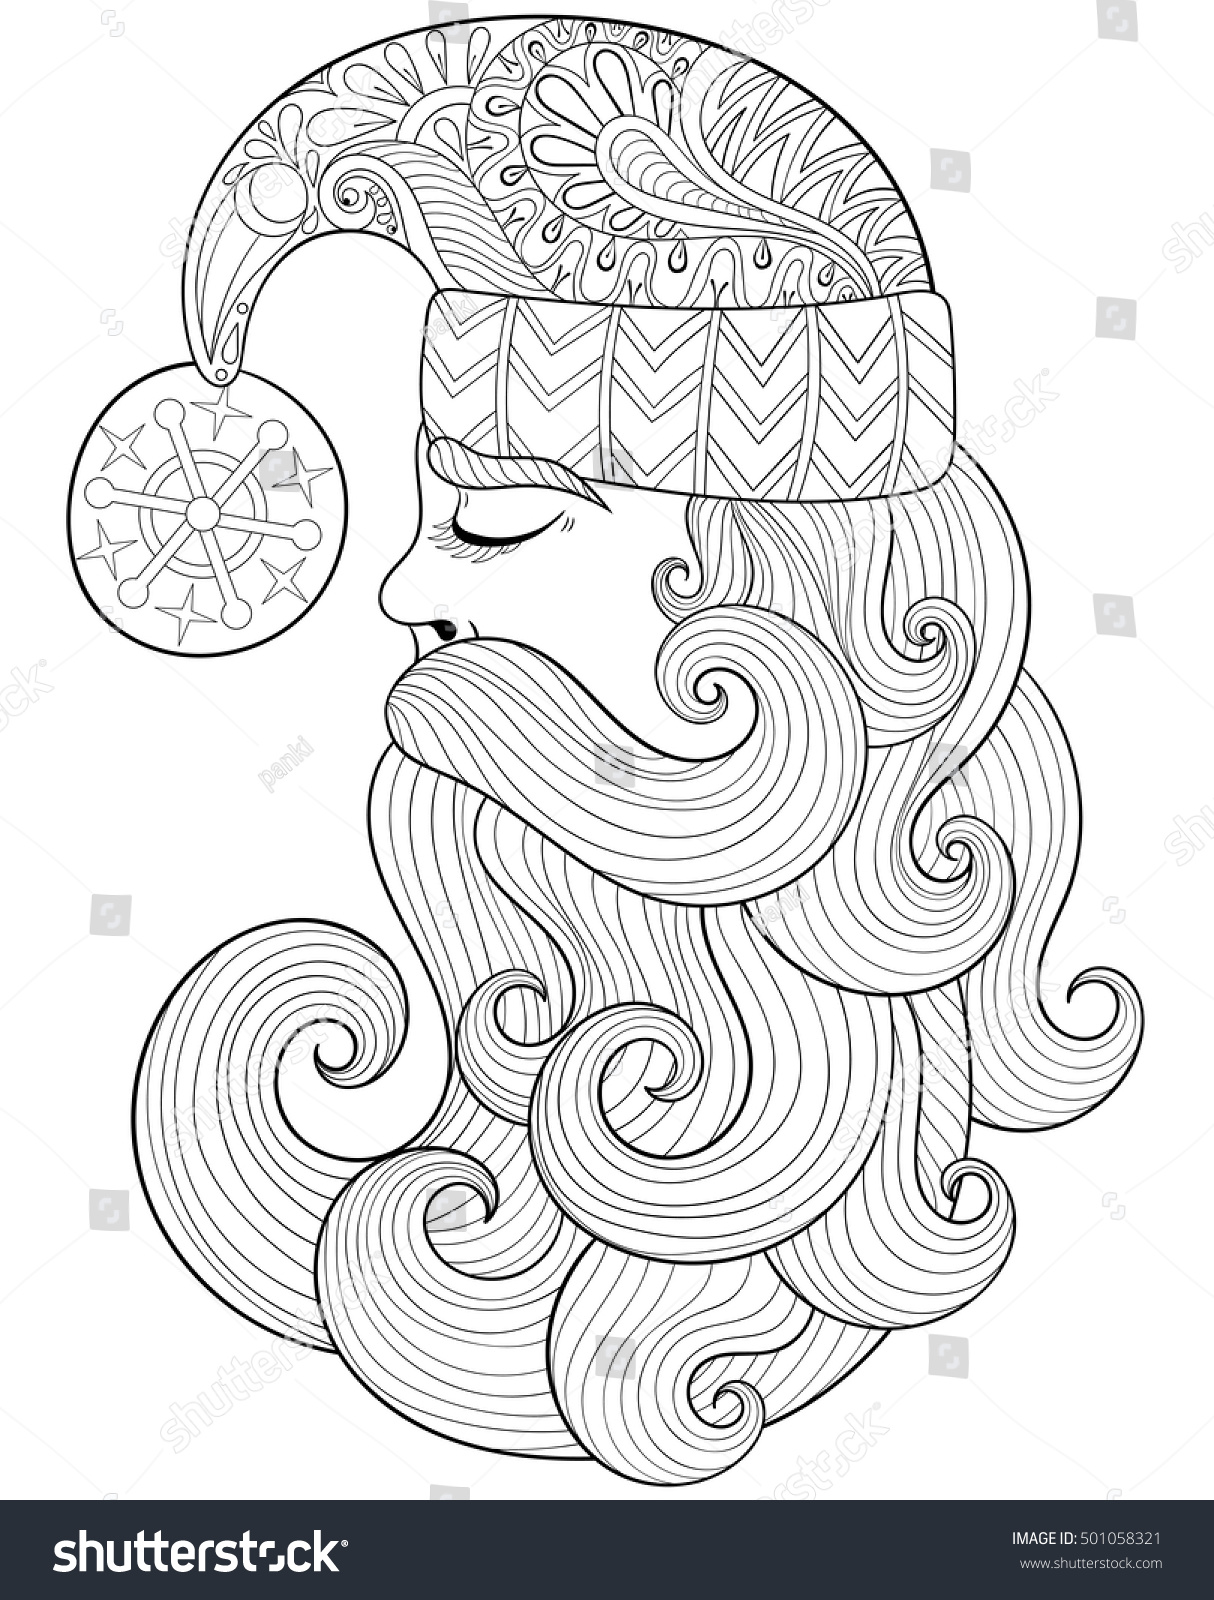 vector christmas illustration zentangle santa claus for adult antistress coloring pages hand drawn illustration